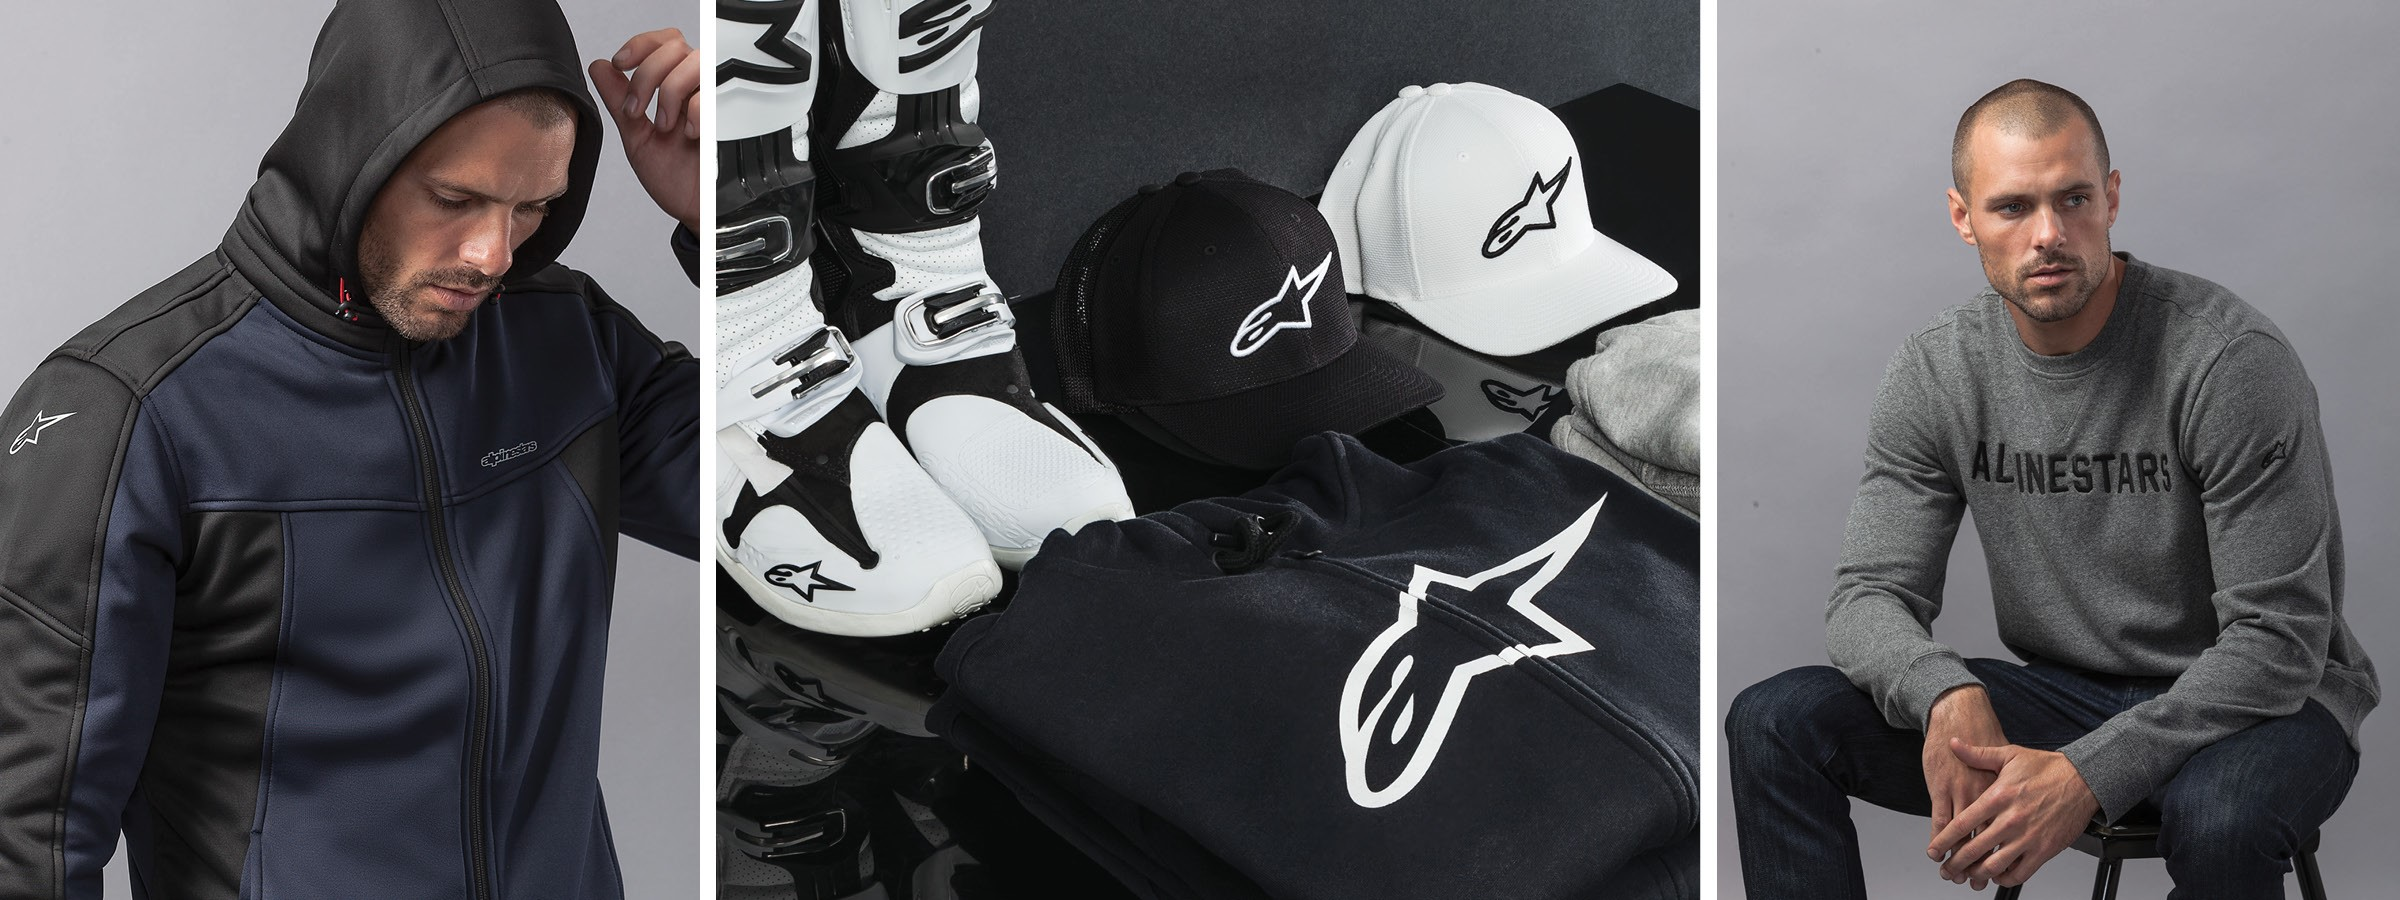 Alpinestars Launches New Fall 2018 Casuals Collection